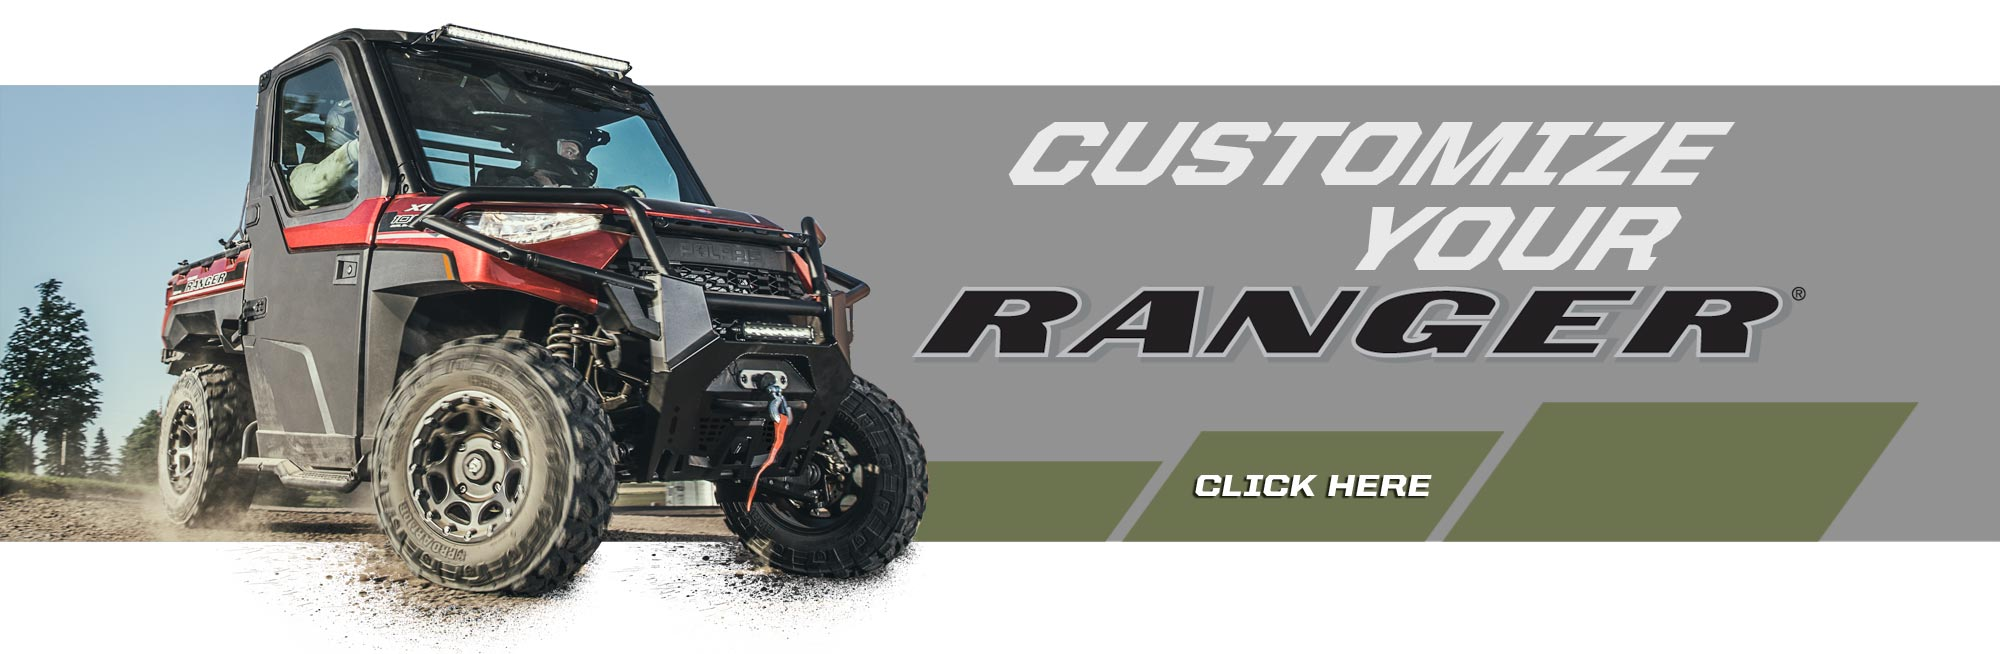 Customize your RANGER